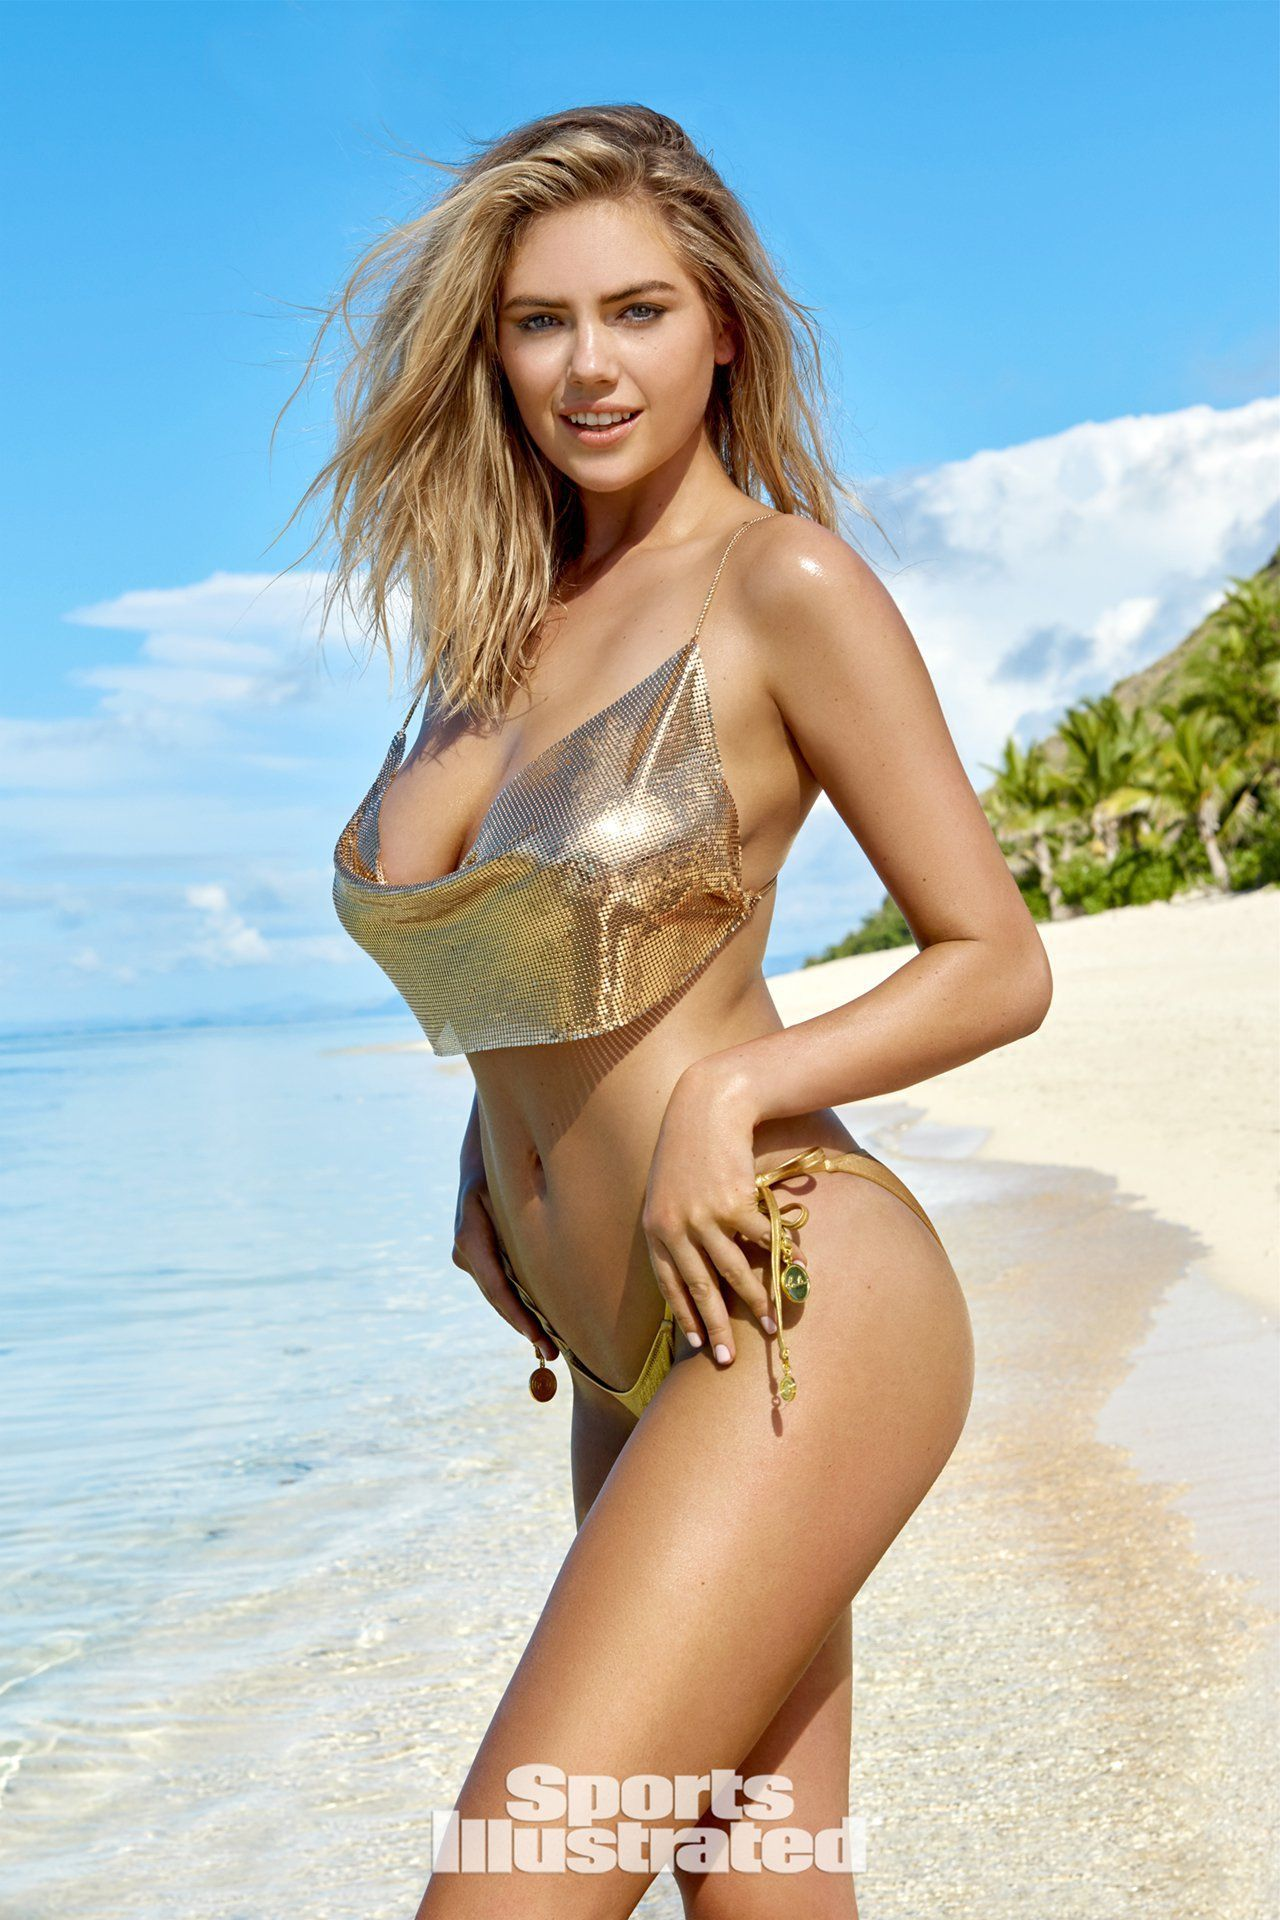 Kate upton gold standard of hotness - 2019 year